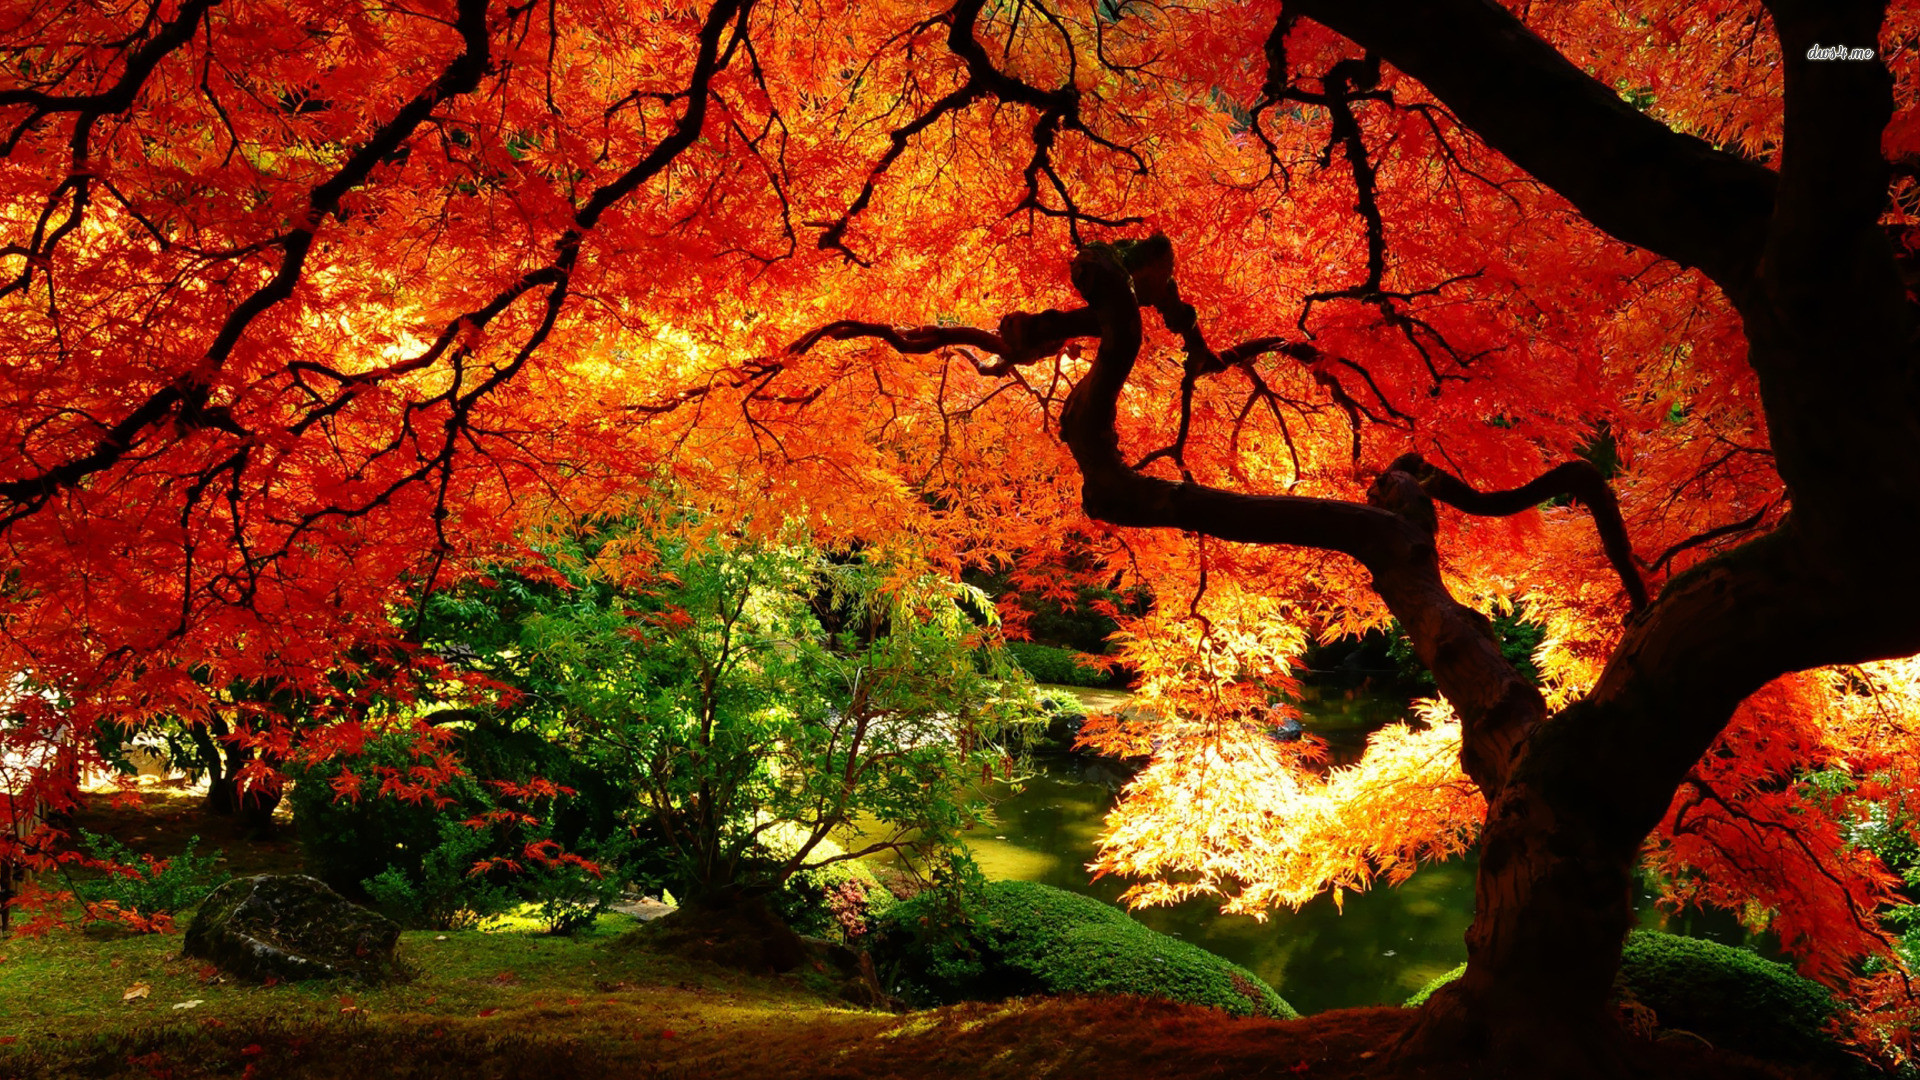 1920x1080 Name: 4315-autumn-landscape--nature-wallpaper.jpg Views